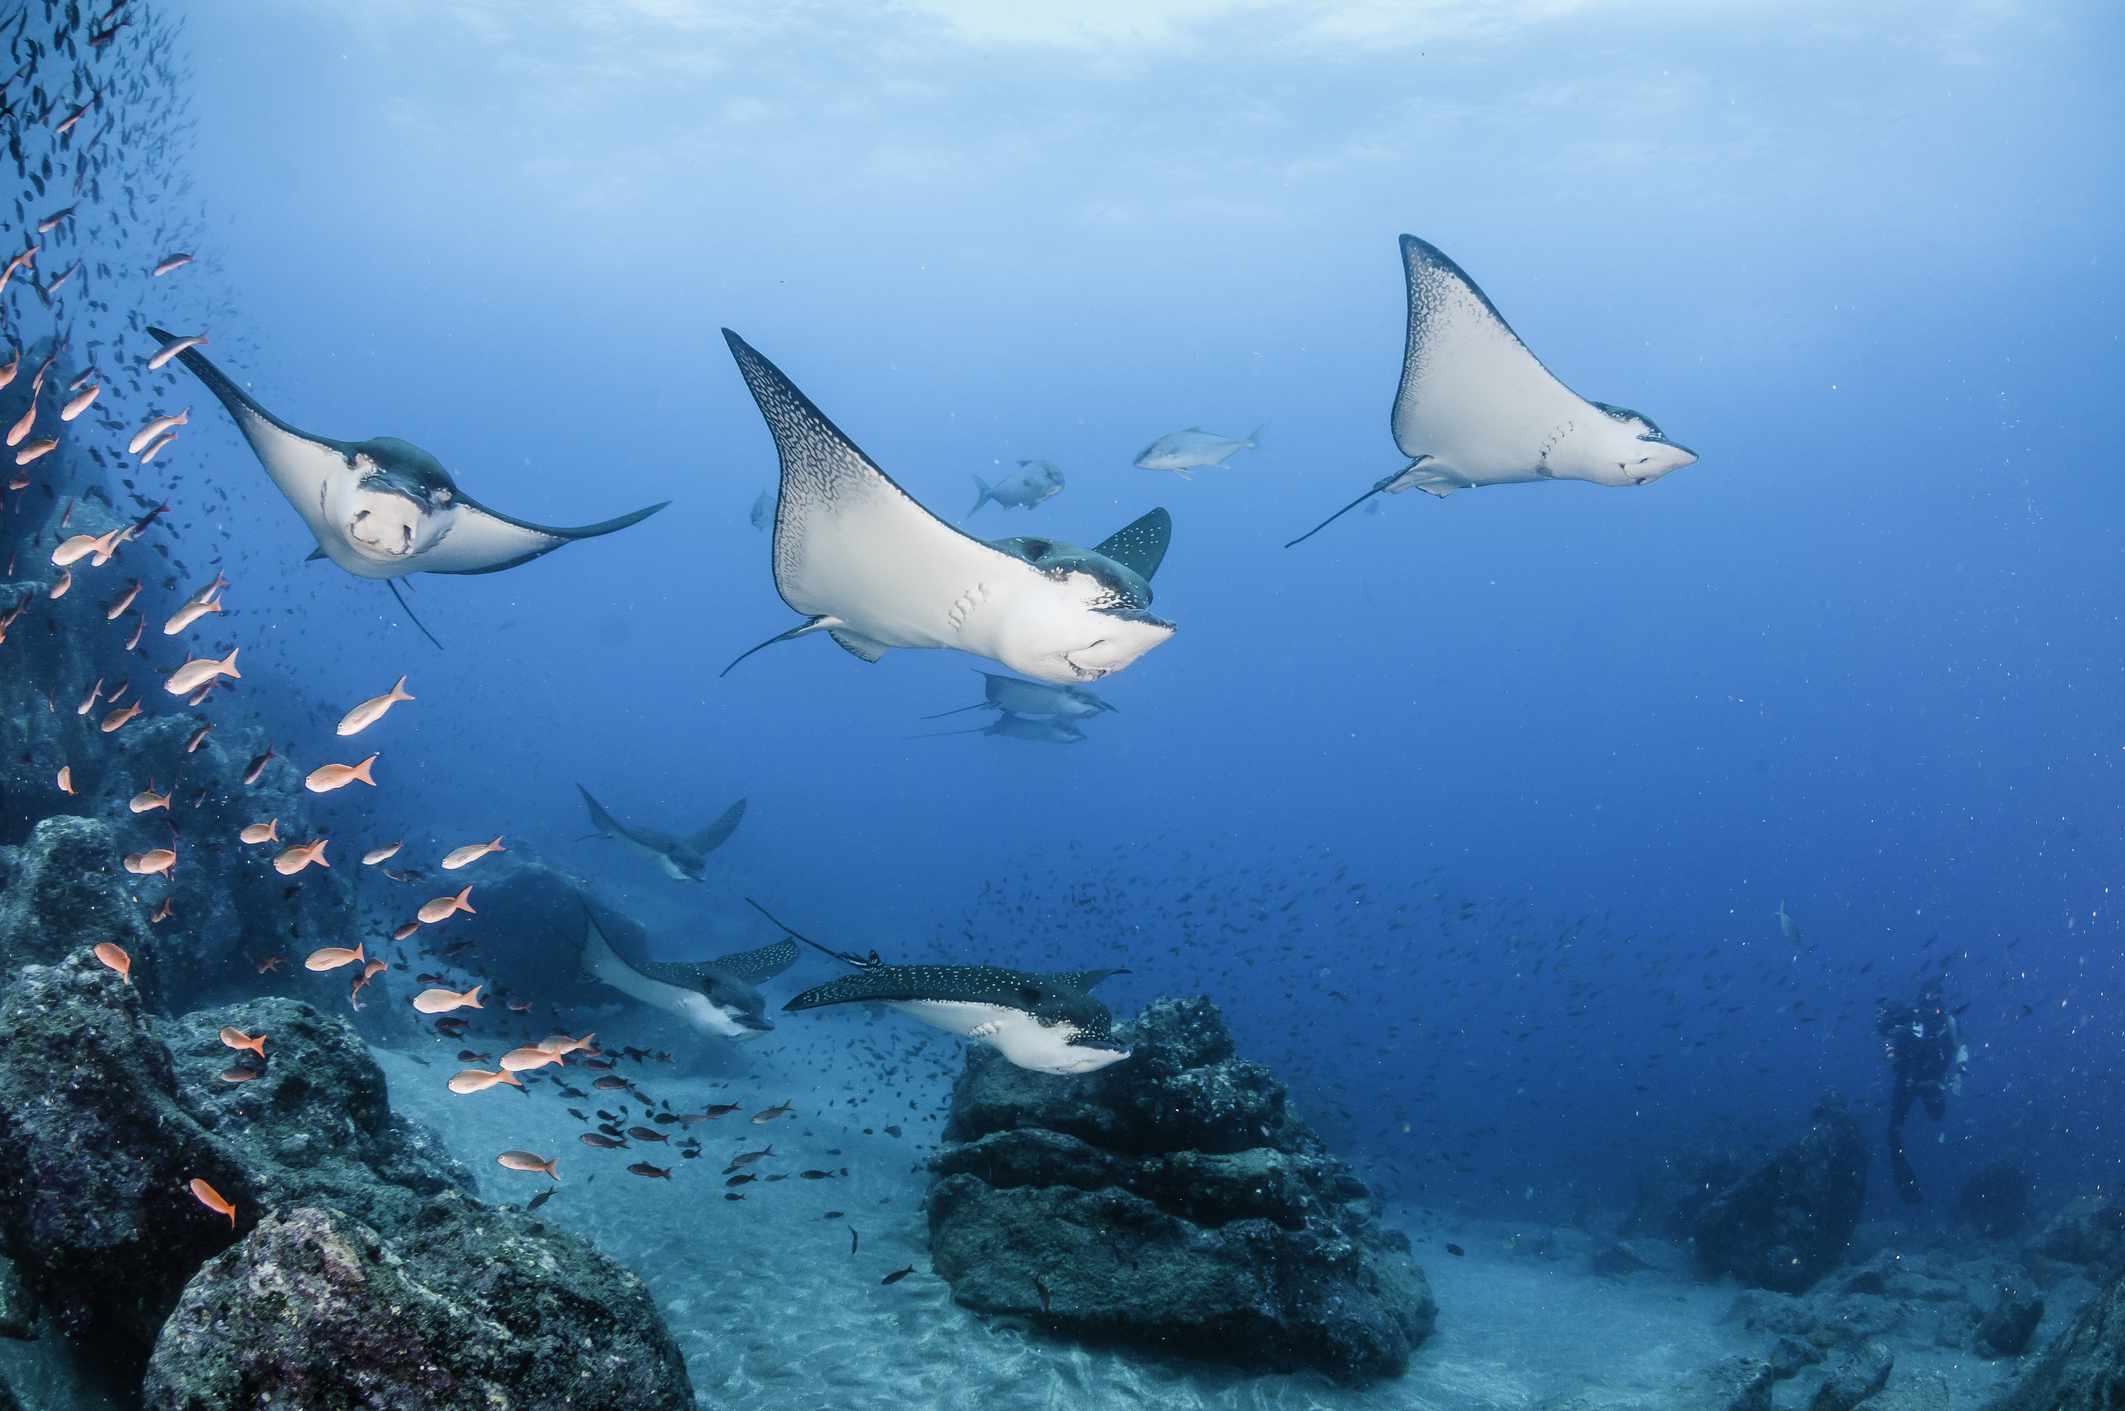 School of eagle rays numbering about 20 swimming along the edge of the reef at Wolf Island.